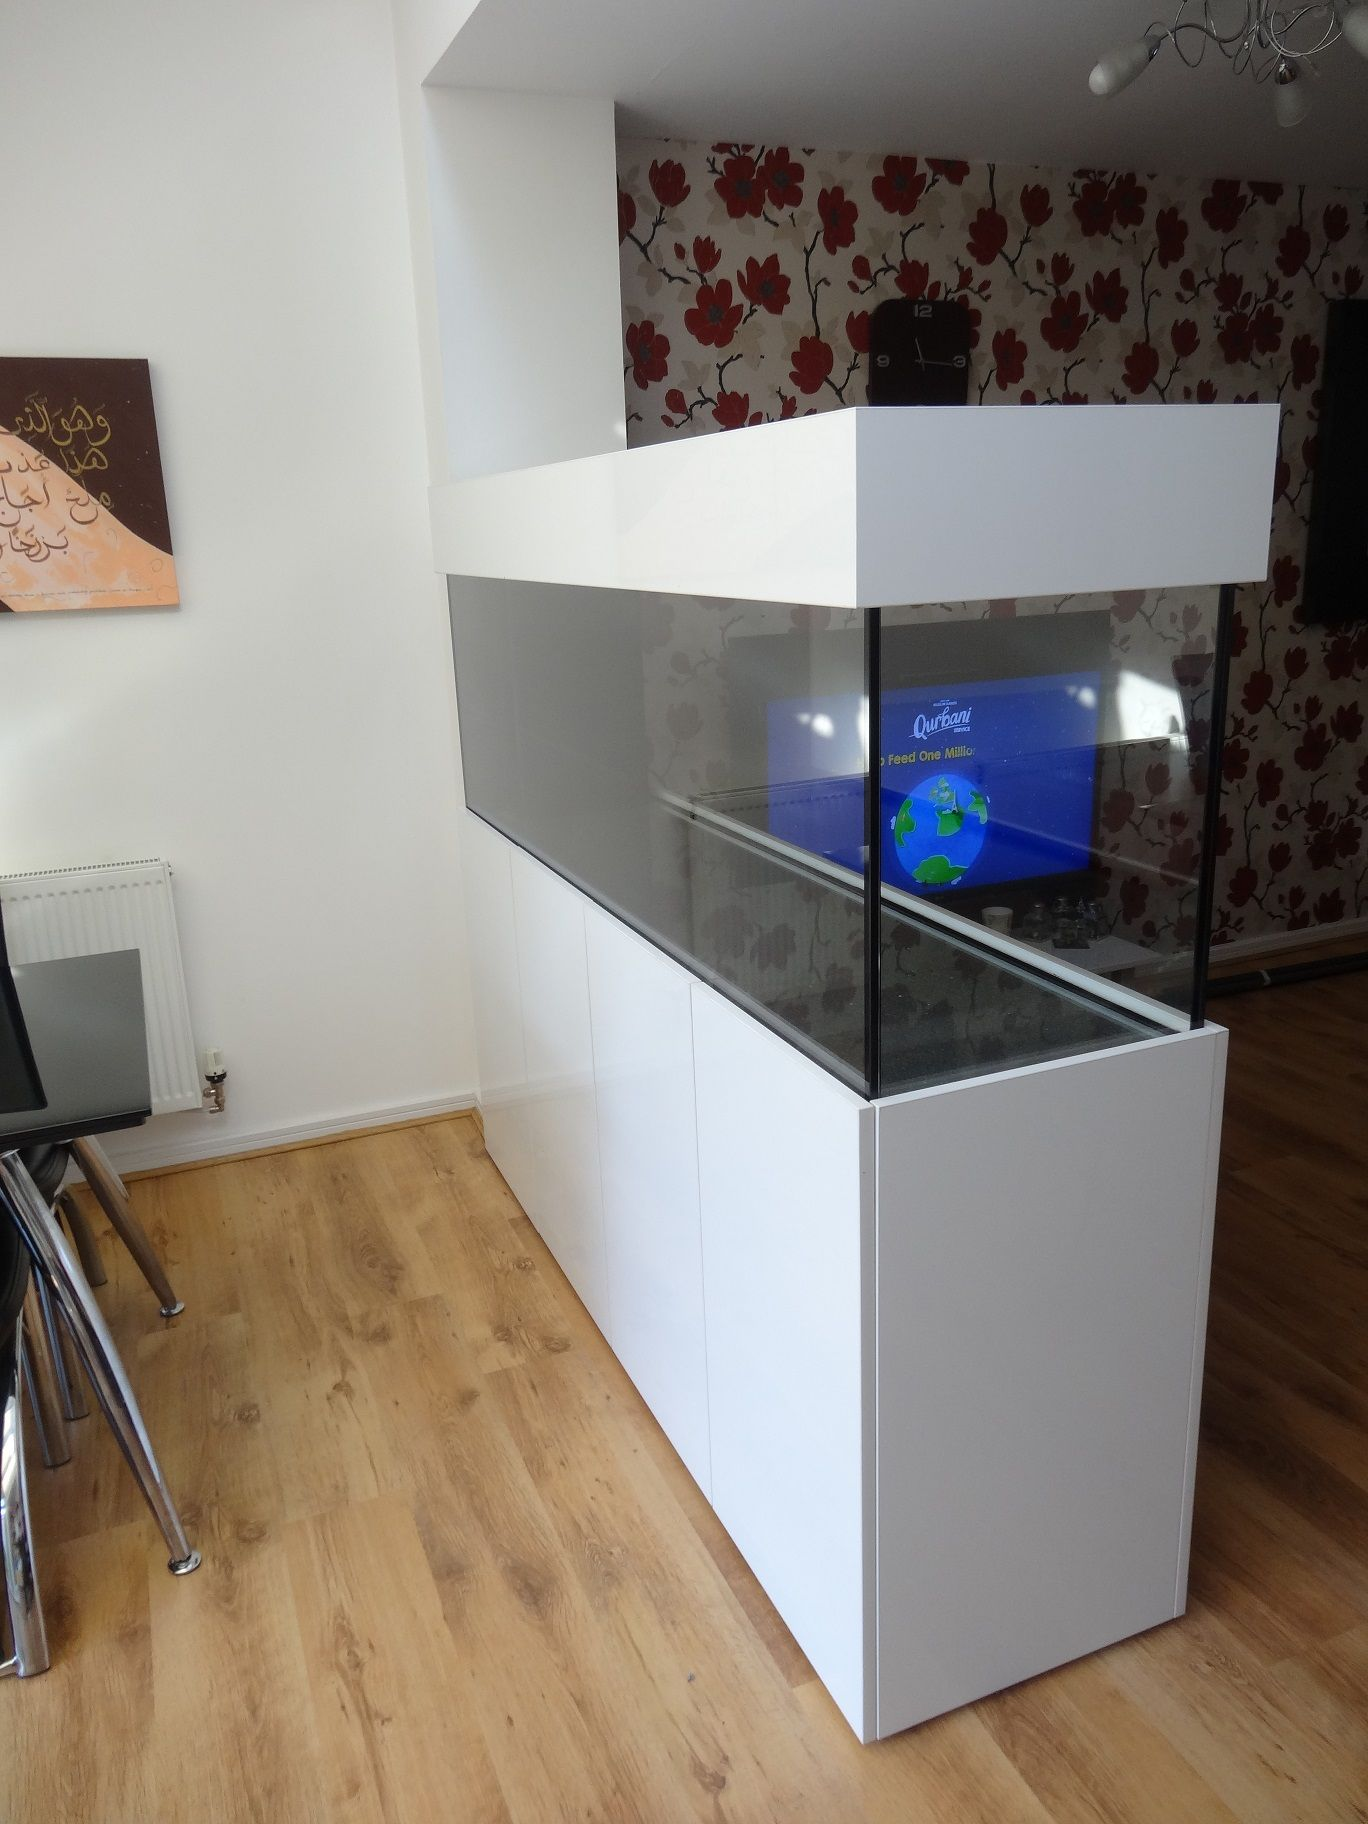 Room Divider Tank 72x24x18 From Prime Aquariums Lower